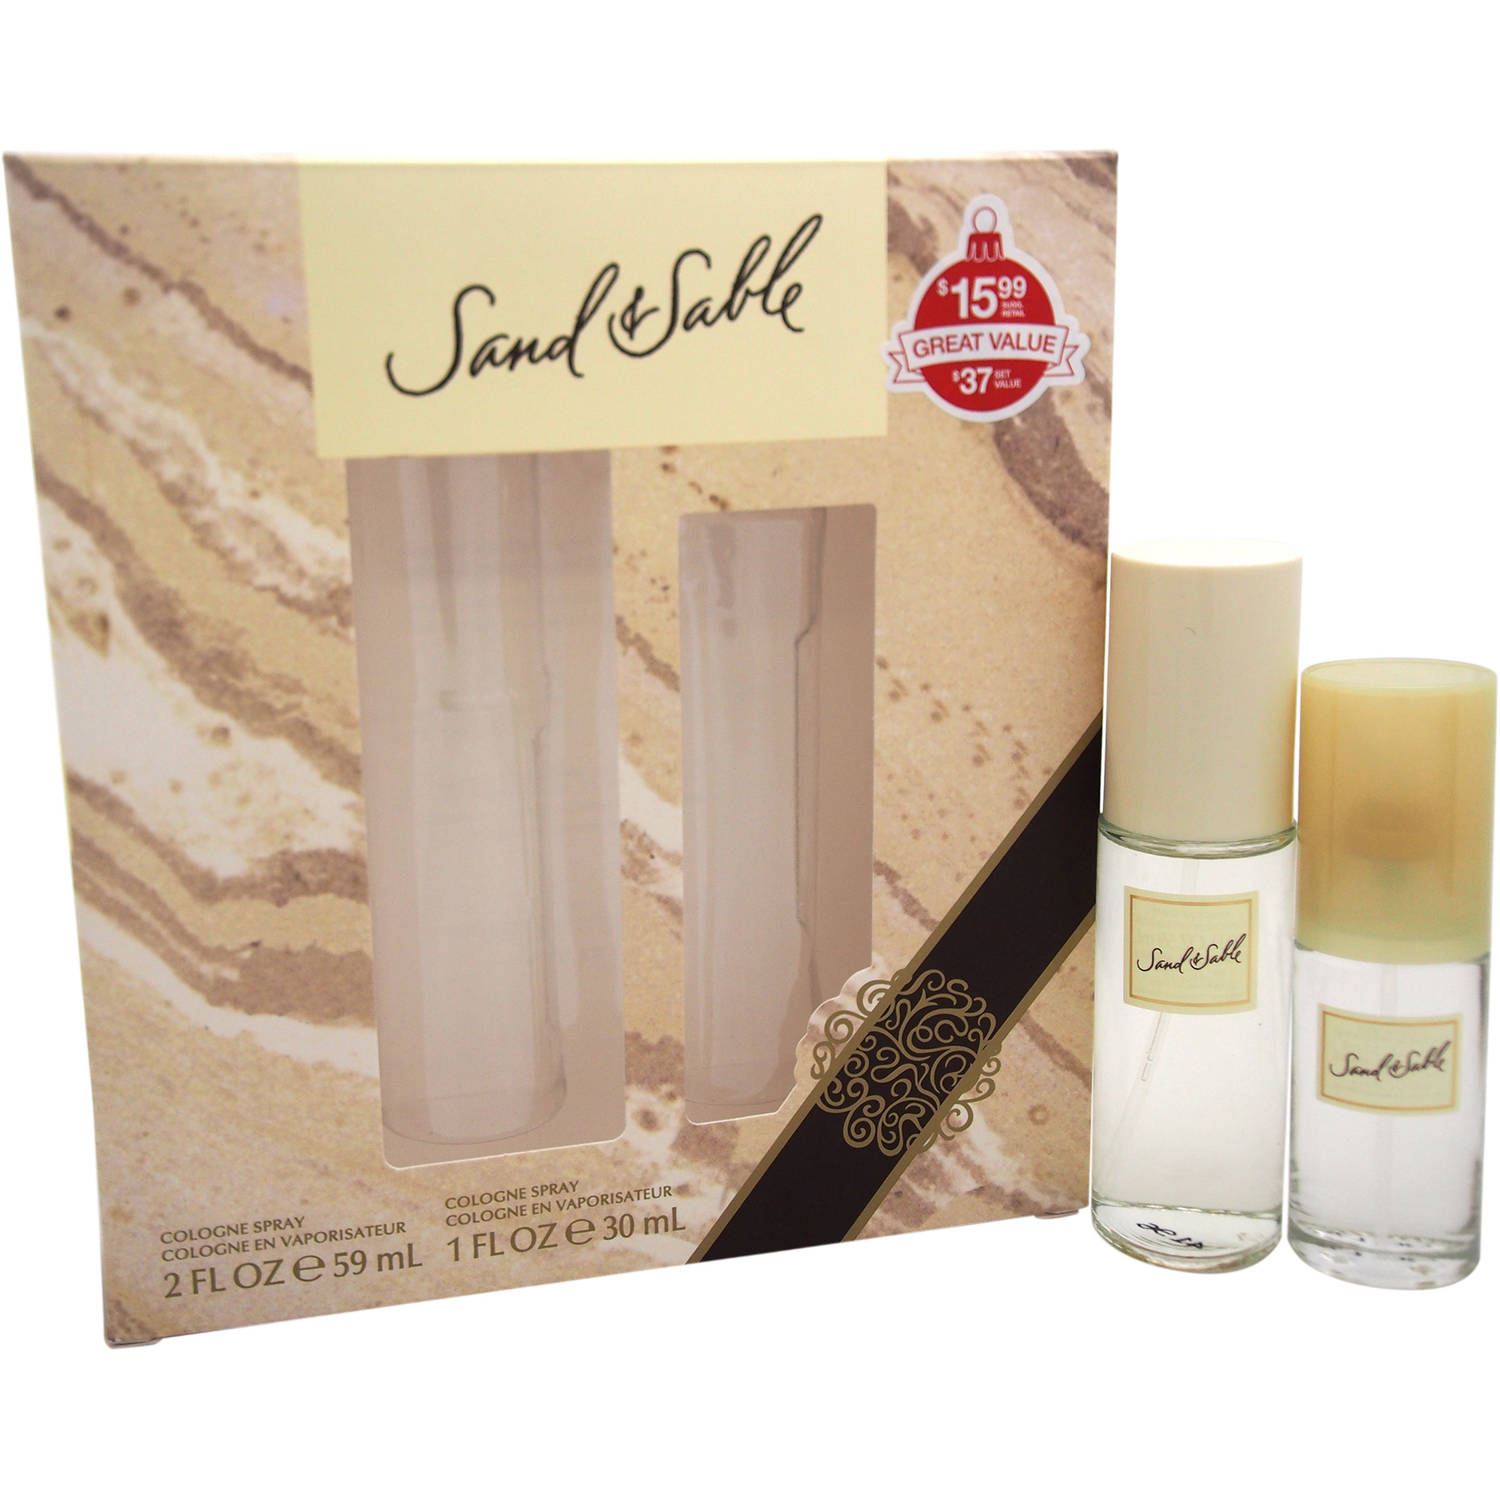 Coty Sand & Sable for Women Fragrance Gift Set, 2 pc